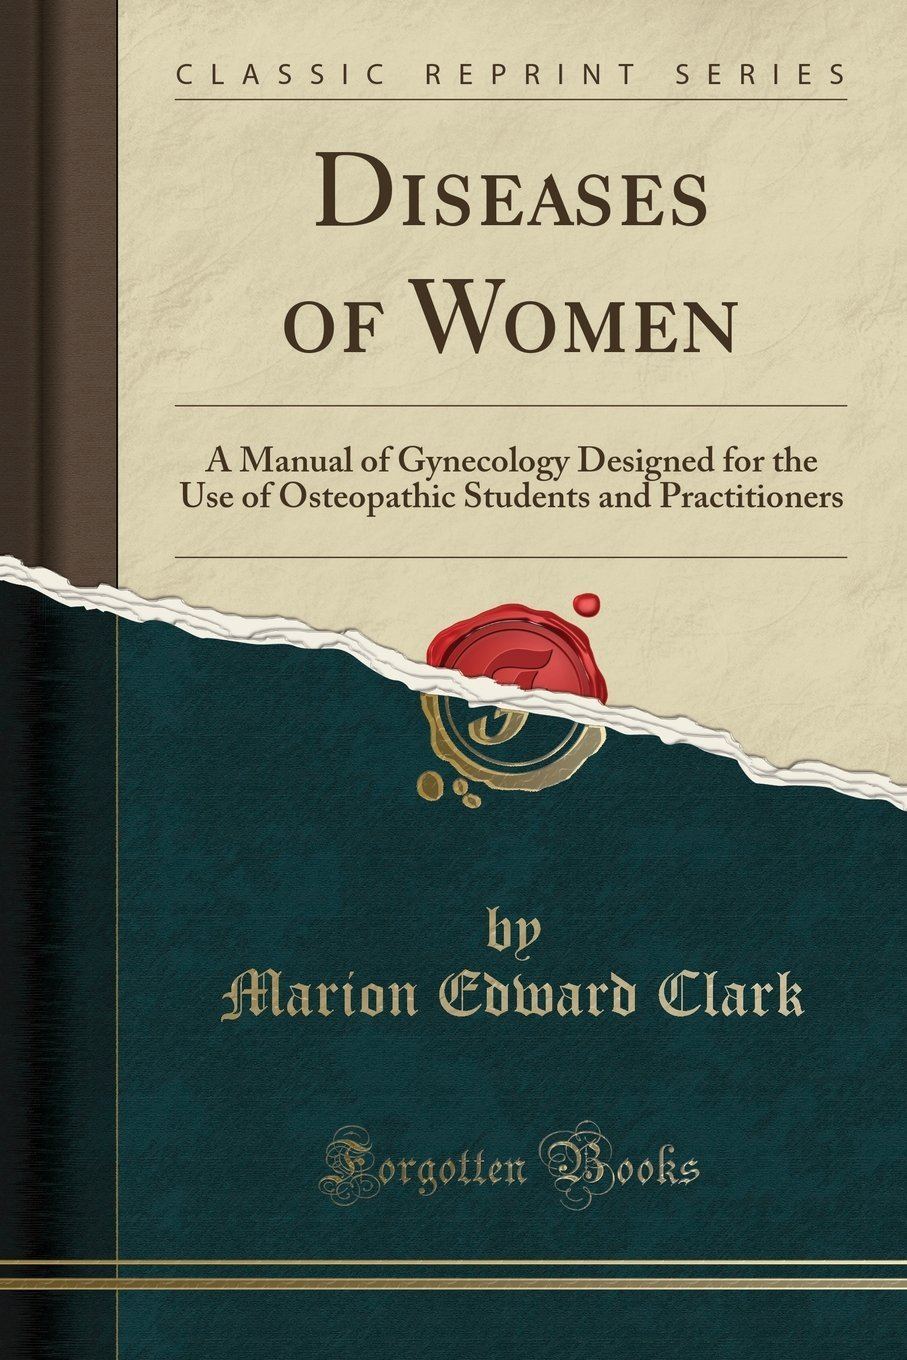 Diseases of Women: A Manual of Gynecology Designed for the Use of Osteopathic Students and Practitioners (Classic Reprint) ebook